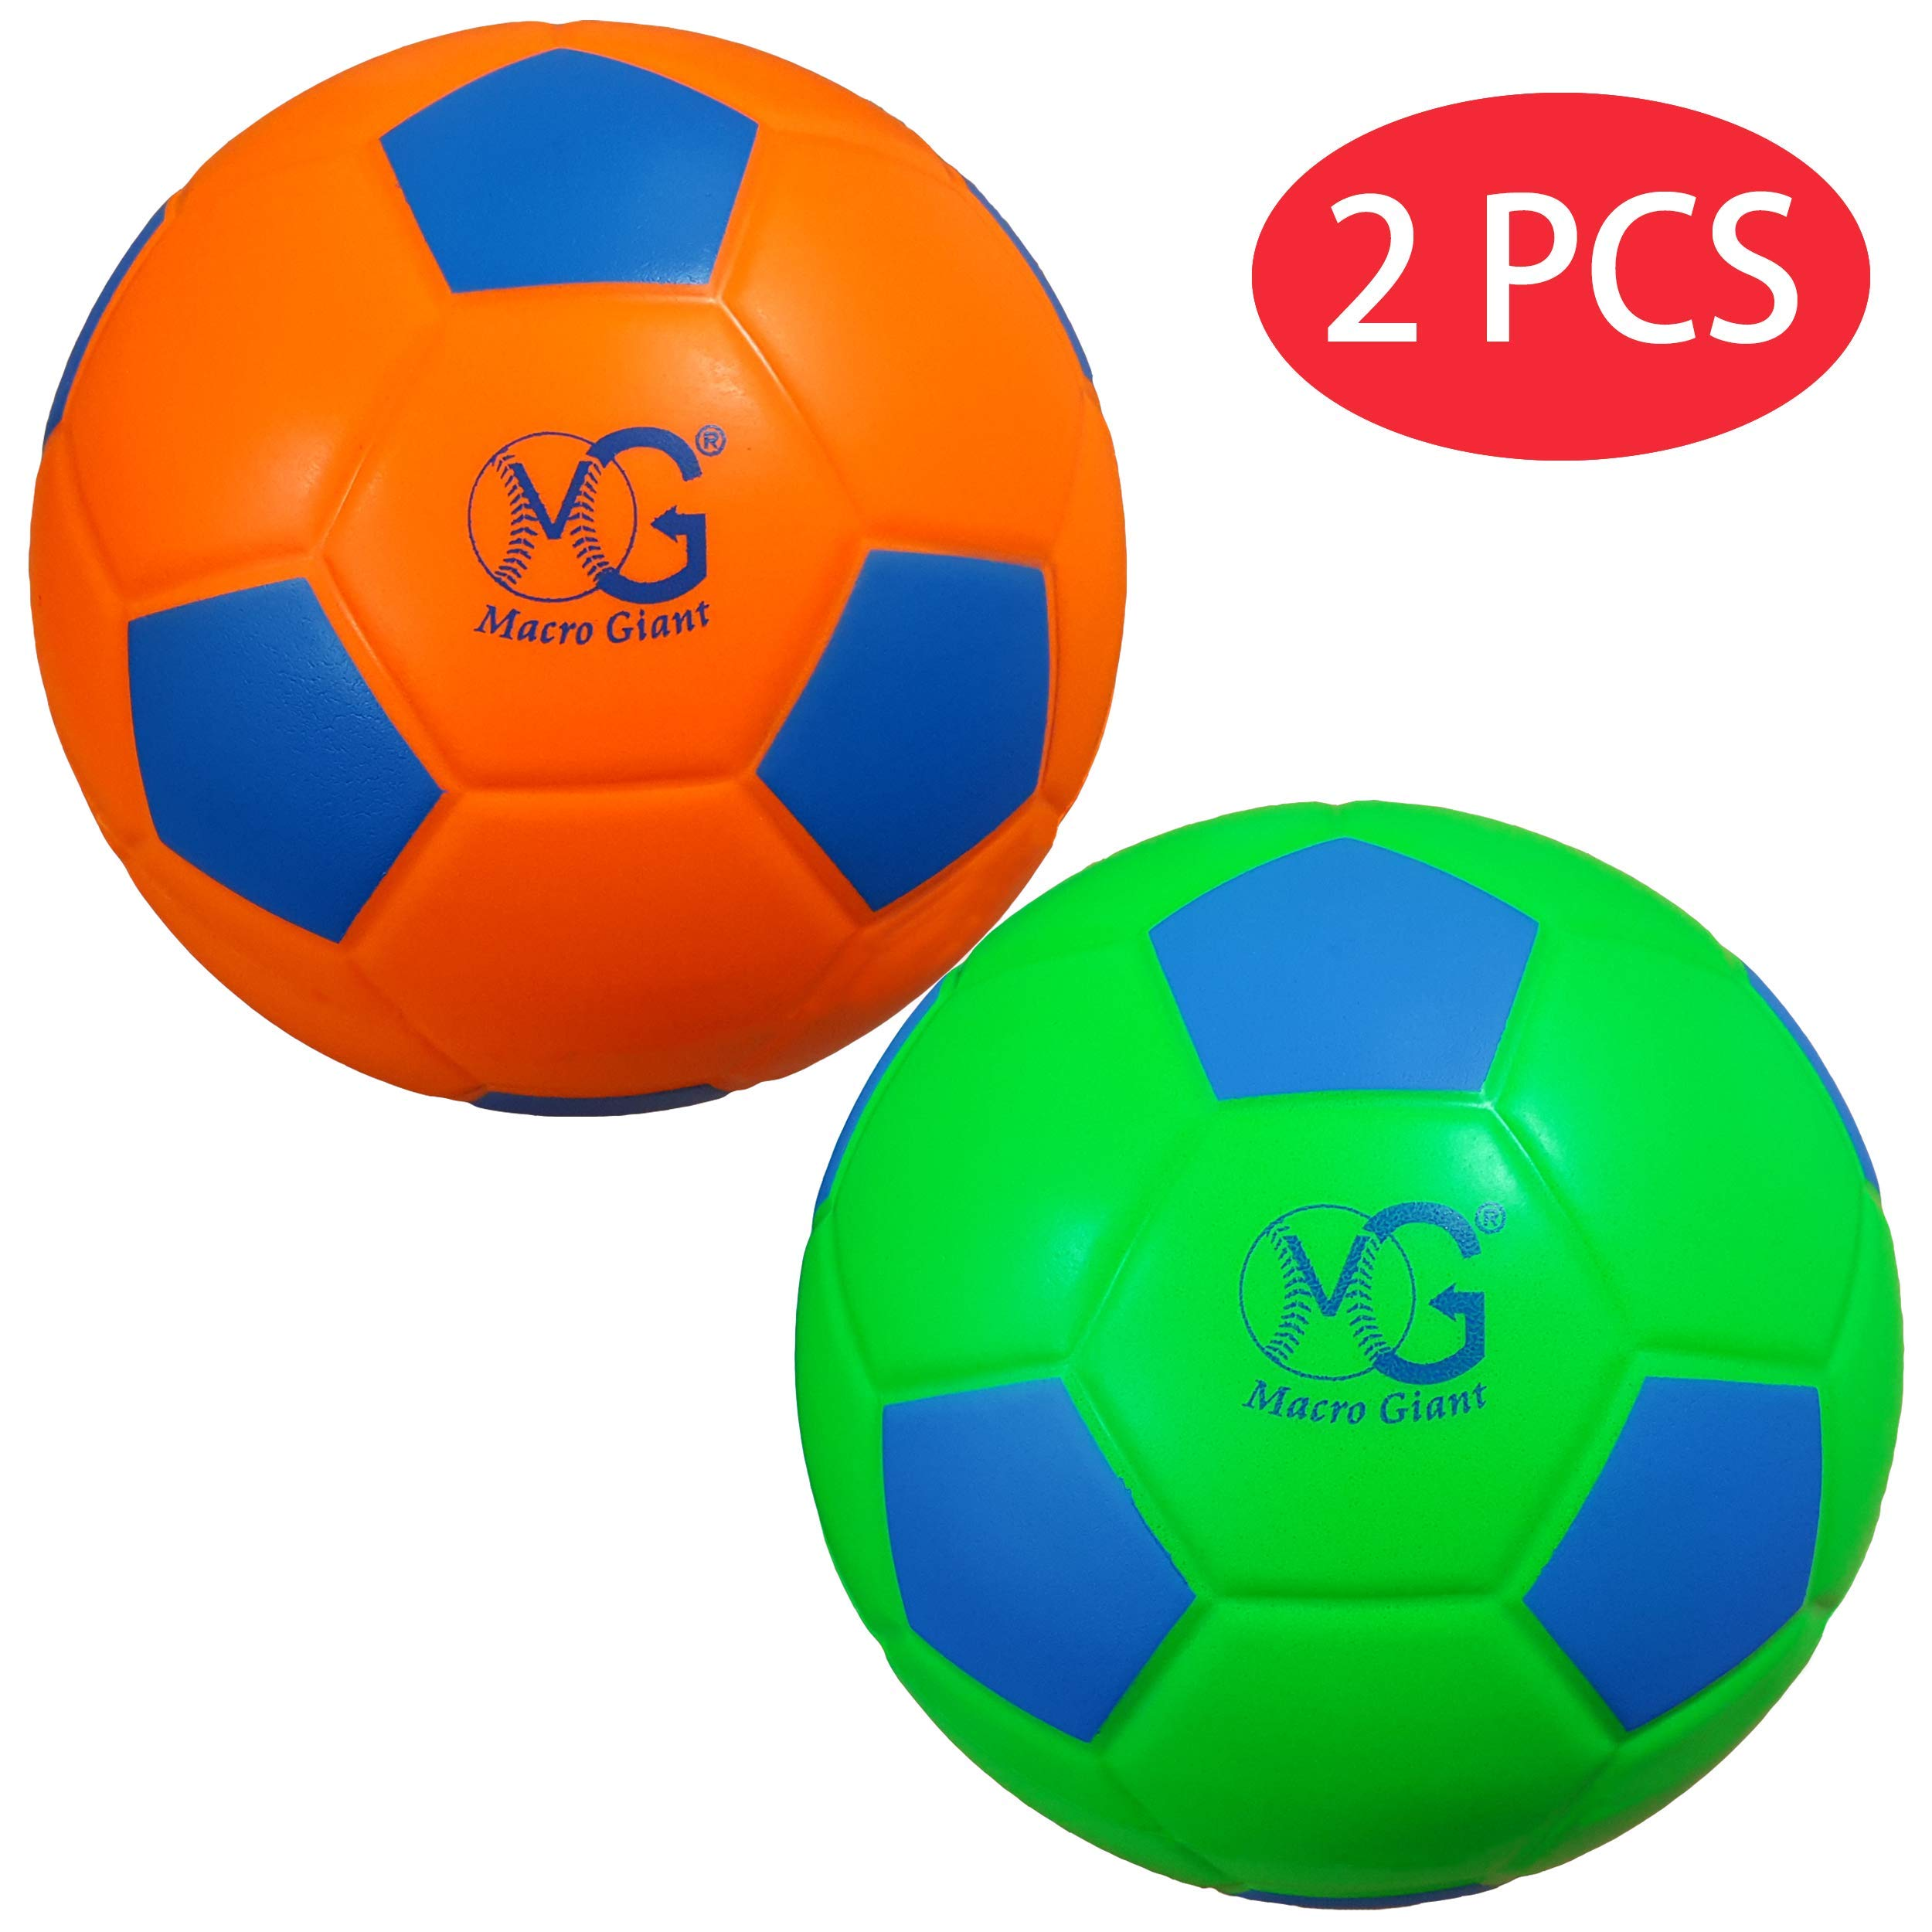 Macro Giant 7.5 Inch (Diameter) Soft Foam Training Practice Soccer Ball, Set of 2, Neon Green & Neon Orange, Kid Sports Toys,Kickball,Kid Toy Gift,Playground Ball,Physical Education Exercise